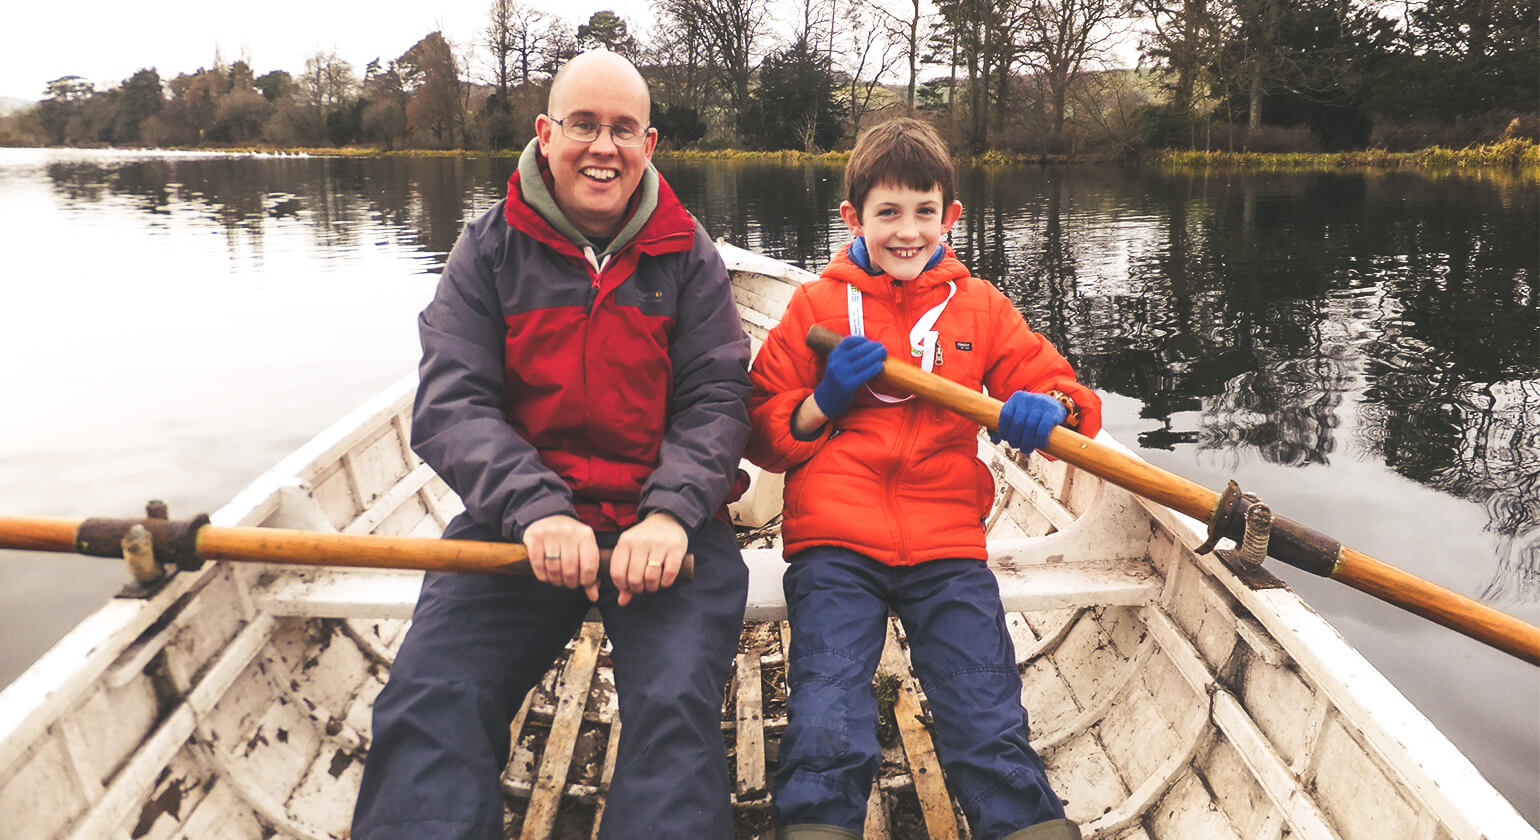 Miles and I rowing in Shrewsbury - December 2017